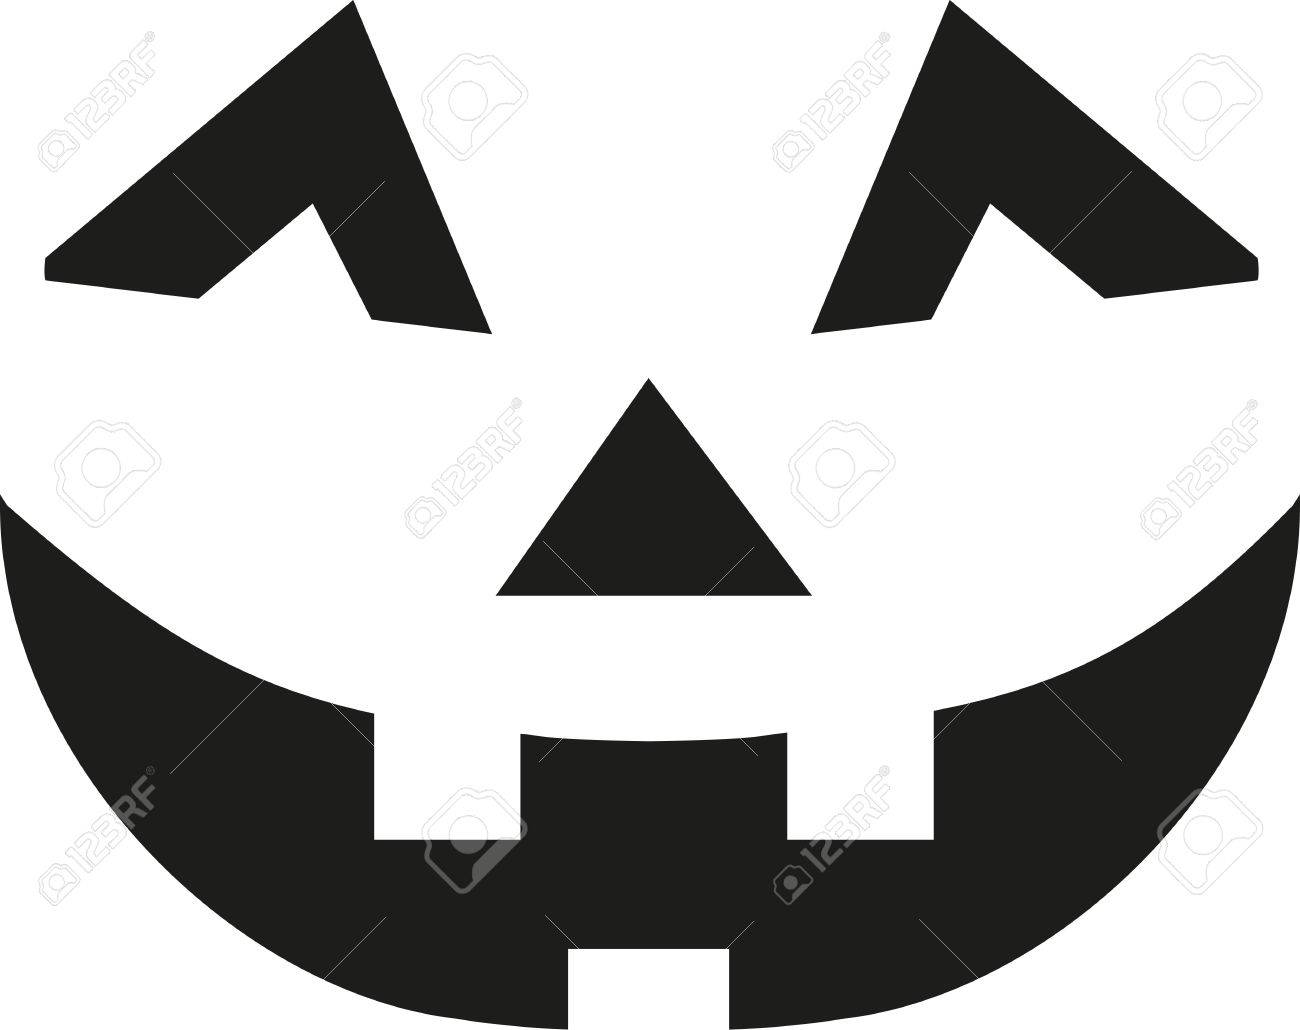 Halloween Pumpkin Face Royalty Free Cliparts, Vectors, And Stock ...